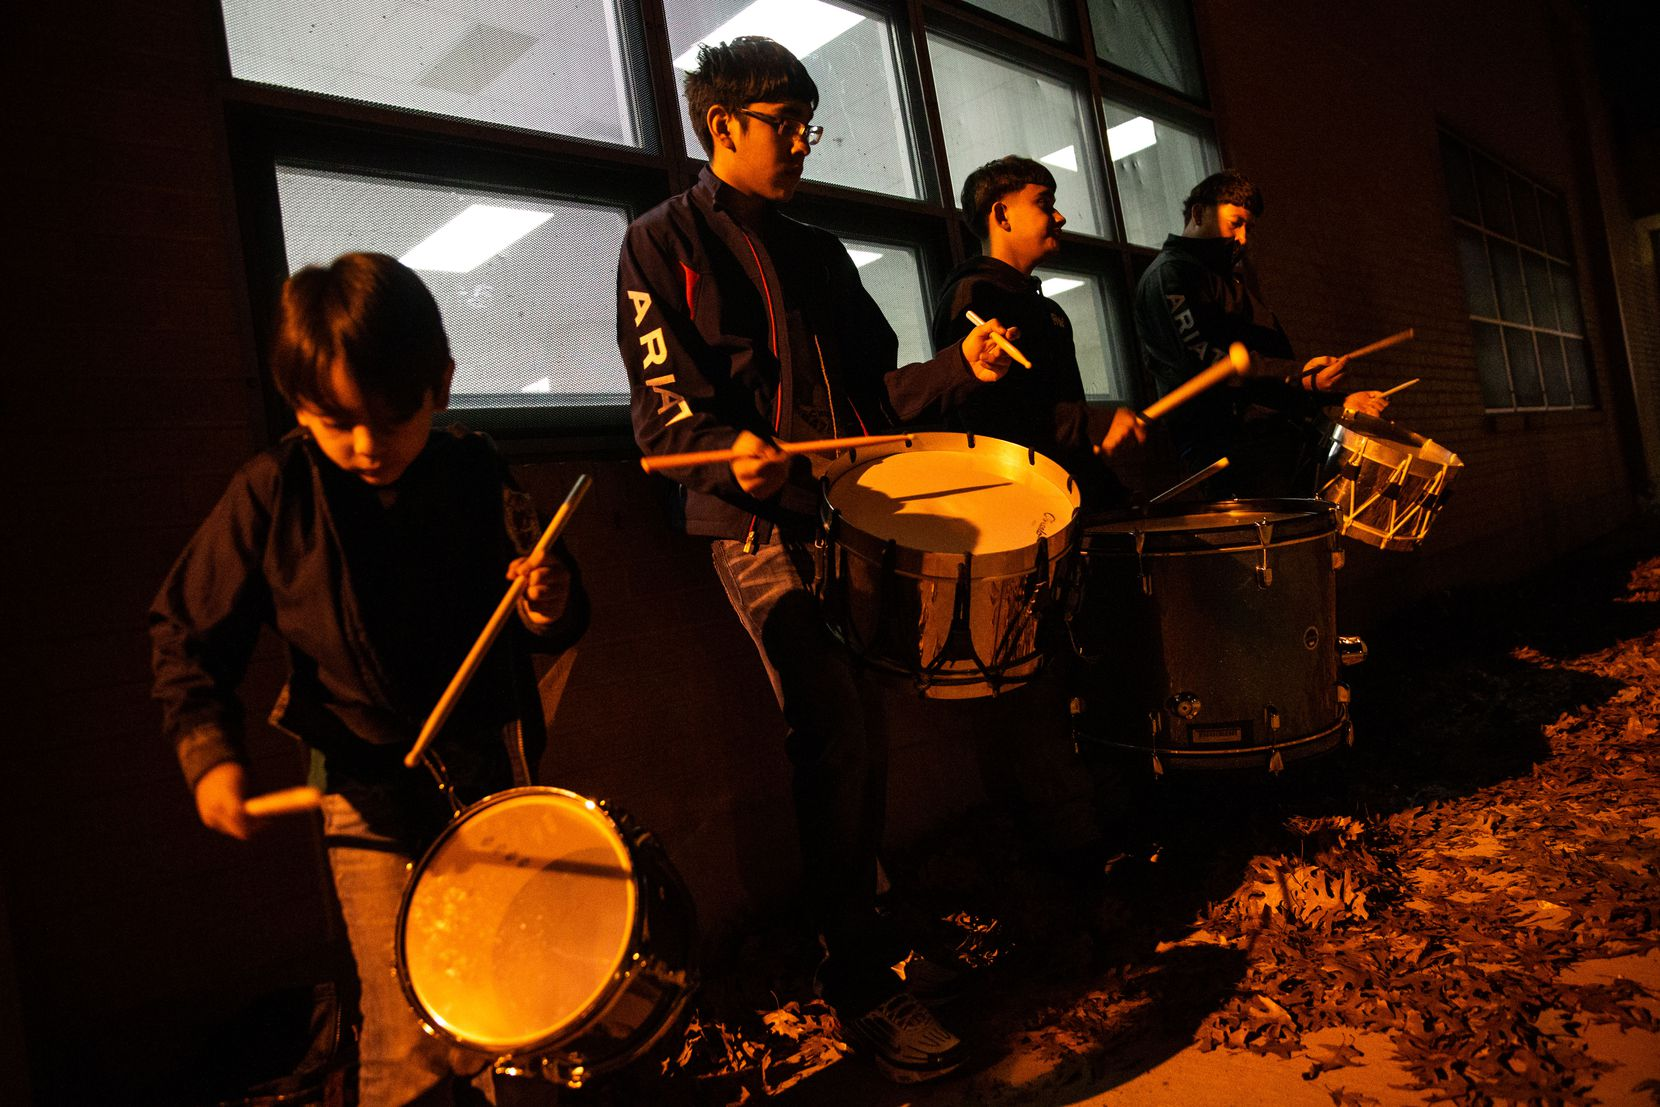 Brothers (from left) Christopher de la Sancha, 7, and Alexander Flores, 15, play the drums with brothers Arnulfo Diaz Jr., 15, and Abraham Diaz, 21, to keep rhythm for Danza Chichimeca San Miguel de Arcángel members.